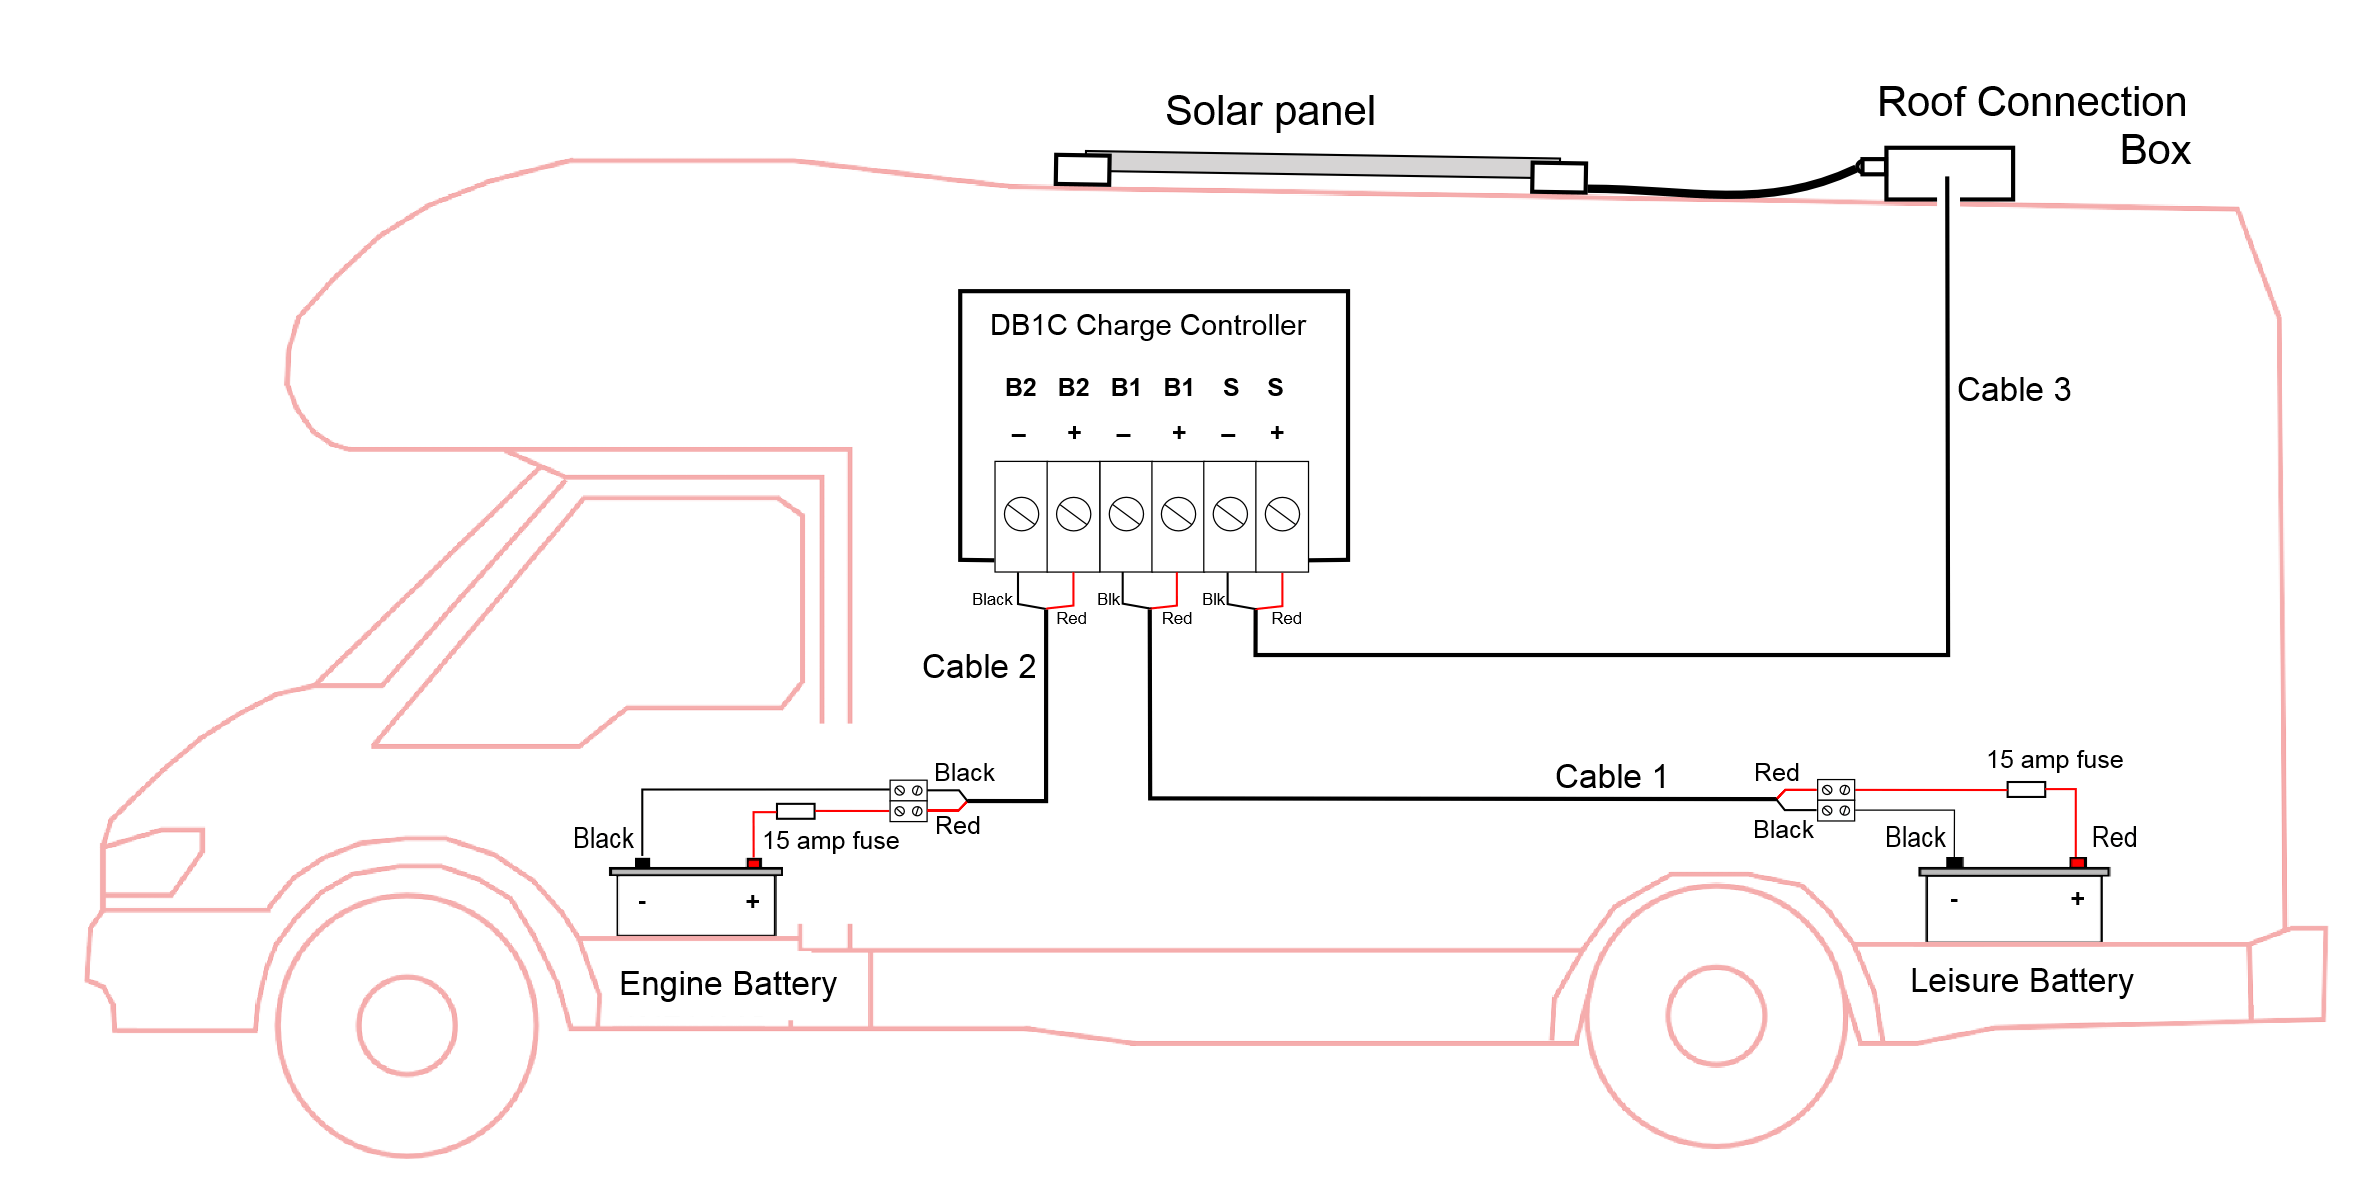 Basic Wiring Diagram Solar Energy Library Battery Charger Circuit Also 12v 500ma Charge Panel Installation For Motorhomes And Boats Part 3 Power Electrical Caravan